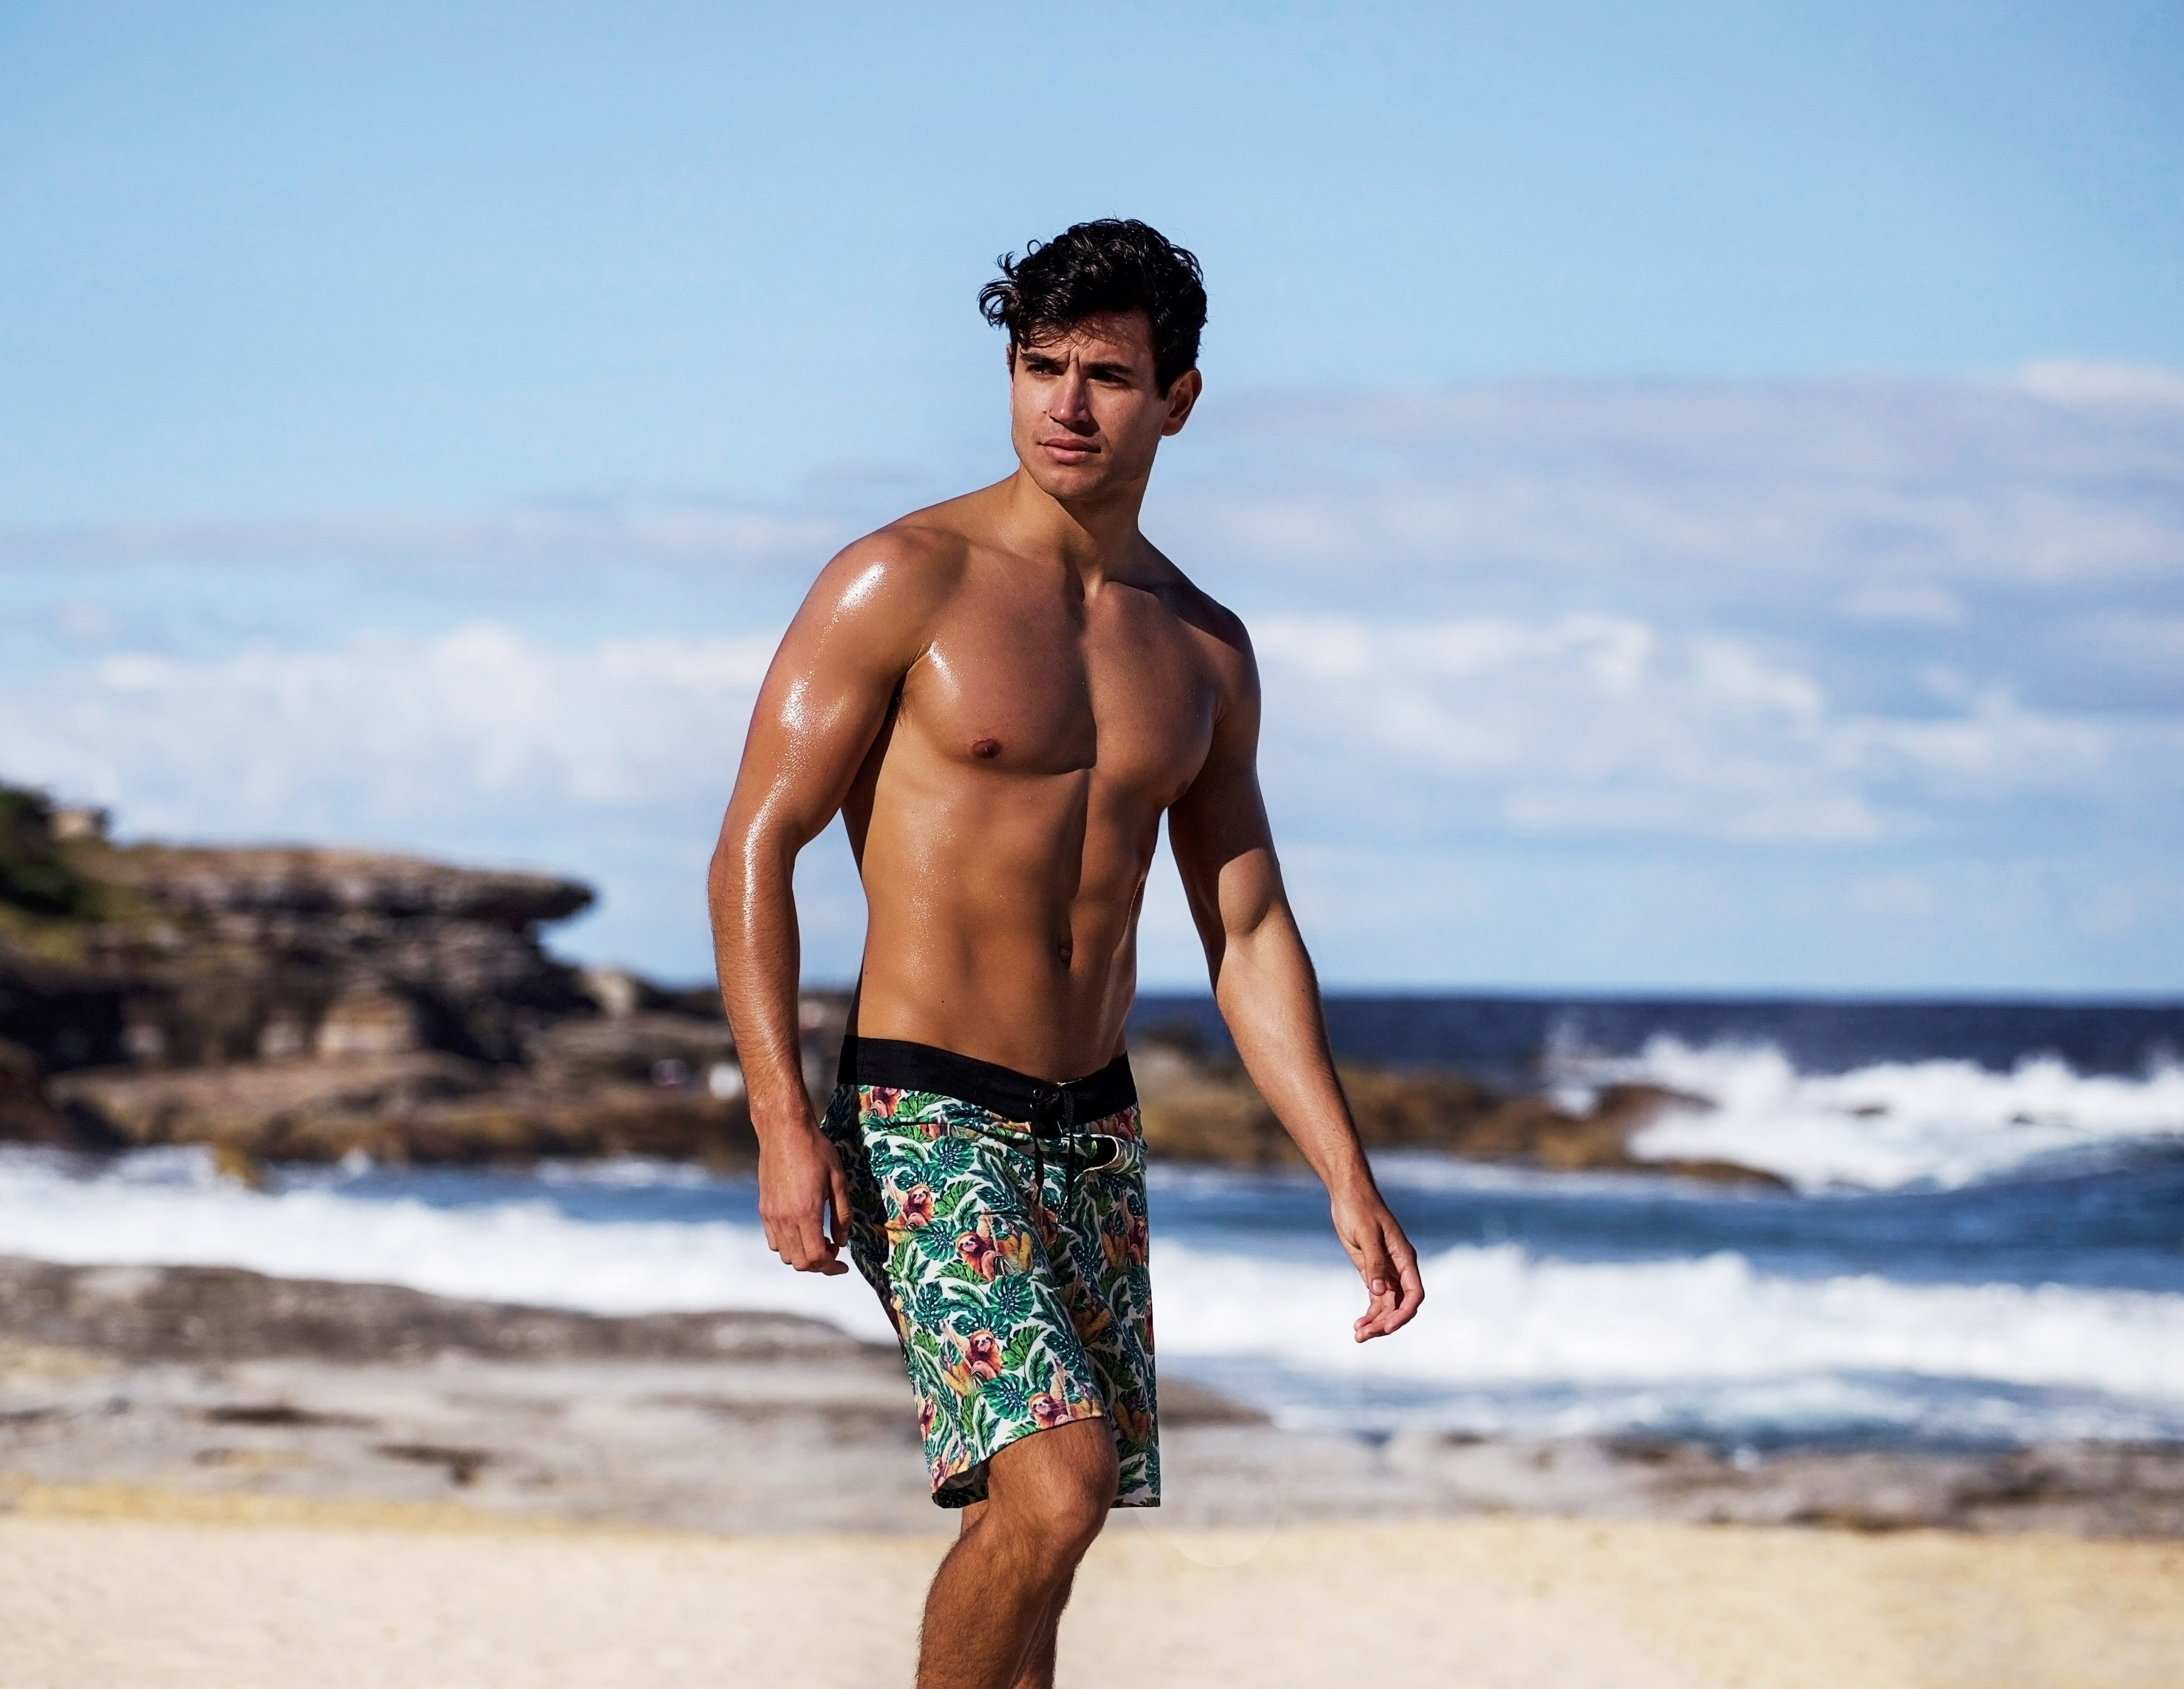 The Sloth Pattern Board Shorts for the Sloth Institute Costa Rica - Men's